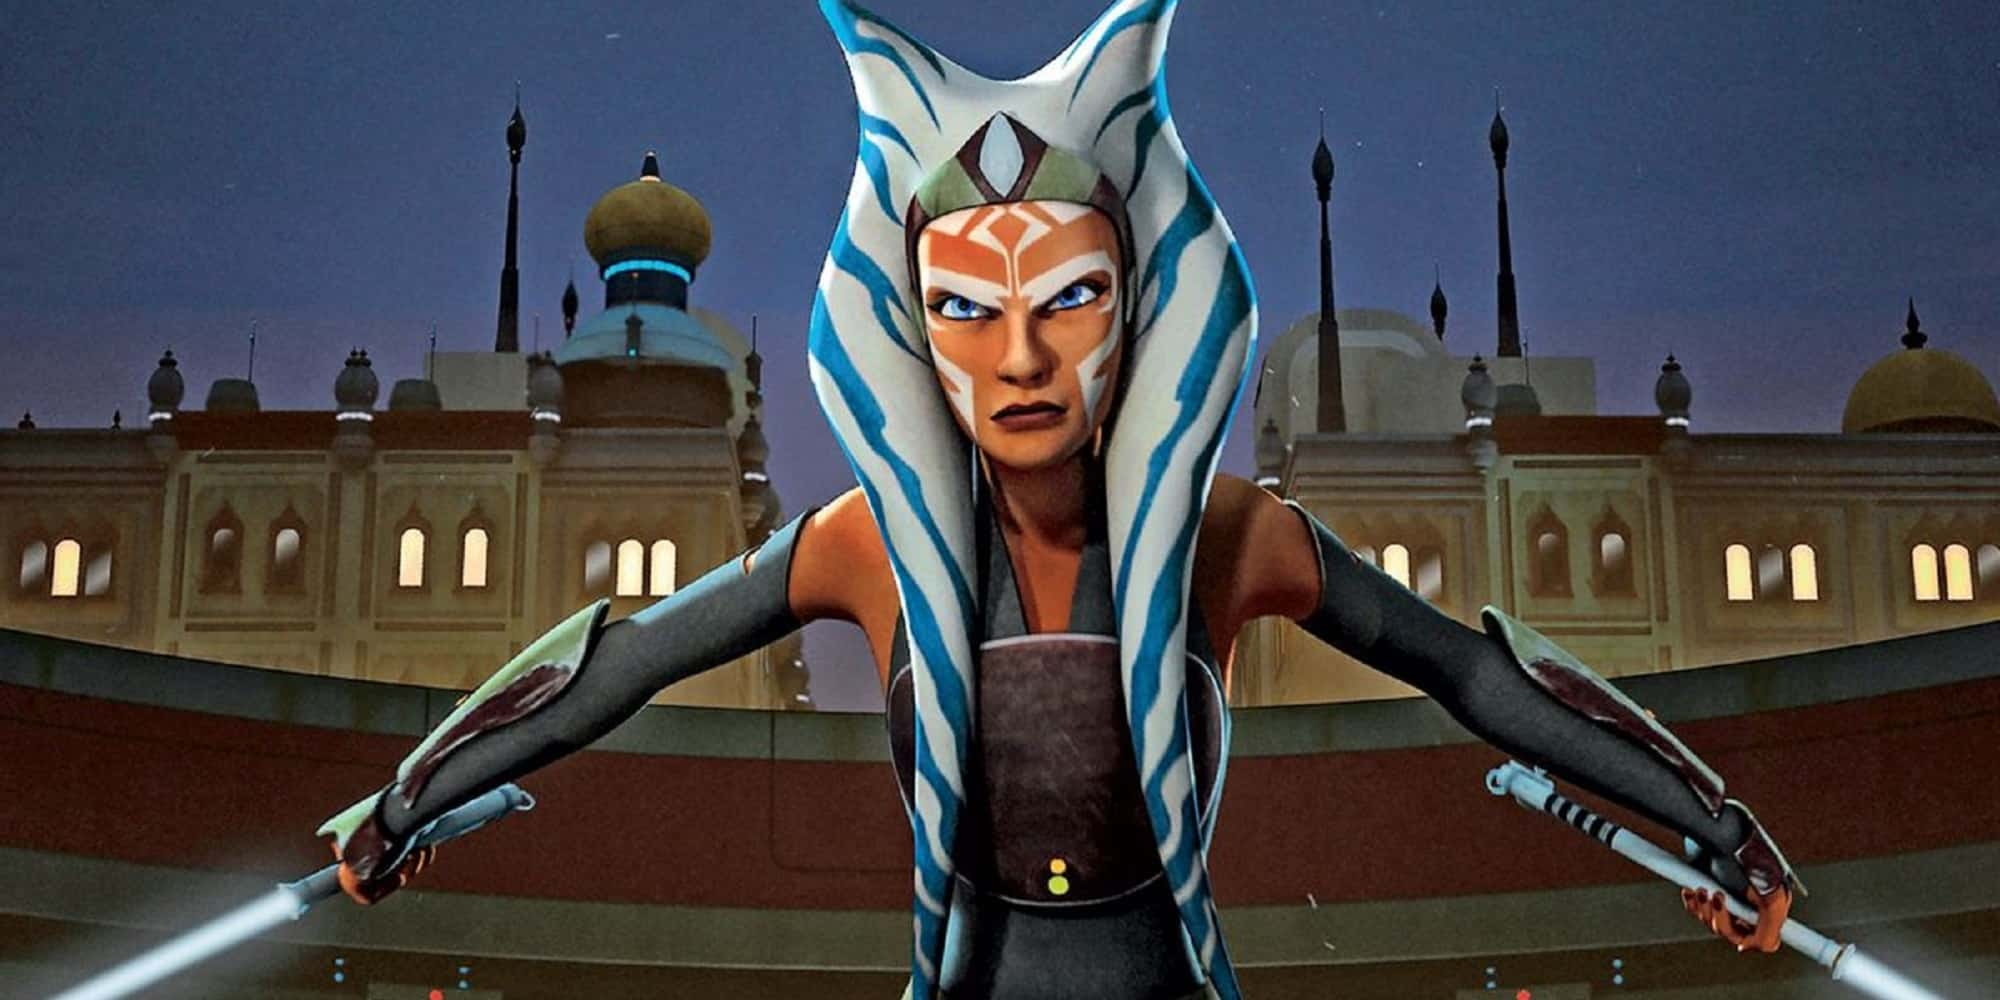 Star Wars Rebels Sequel Series Disney+ 2020 Ahsoka